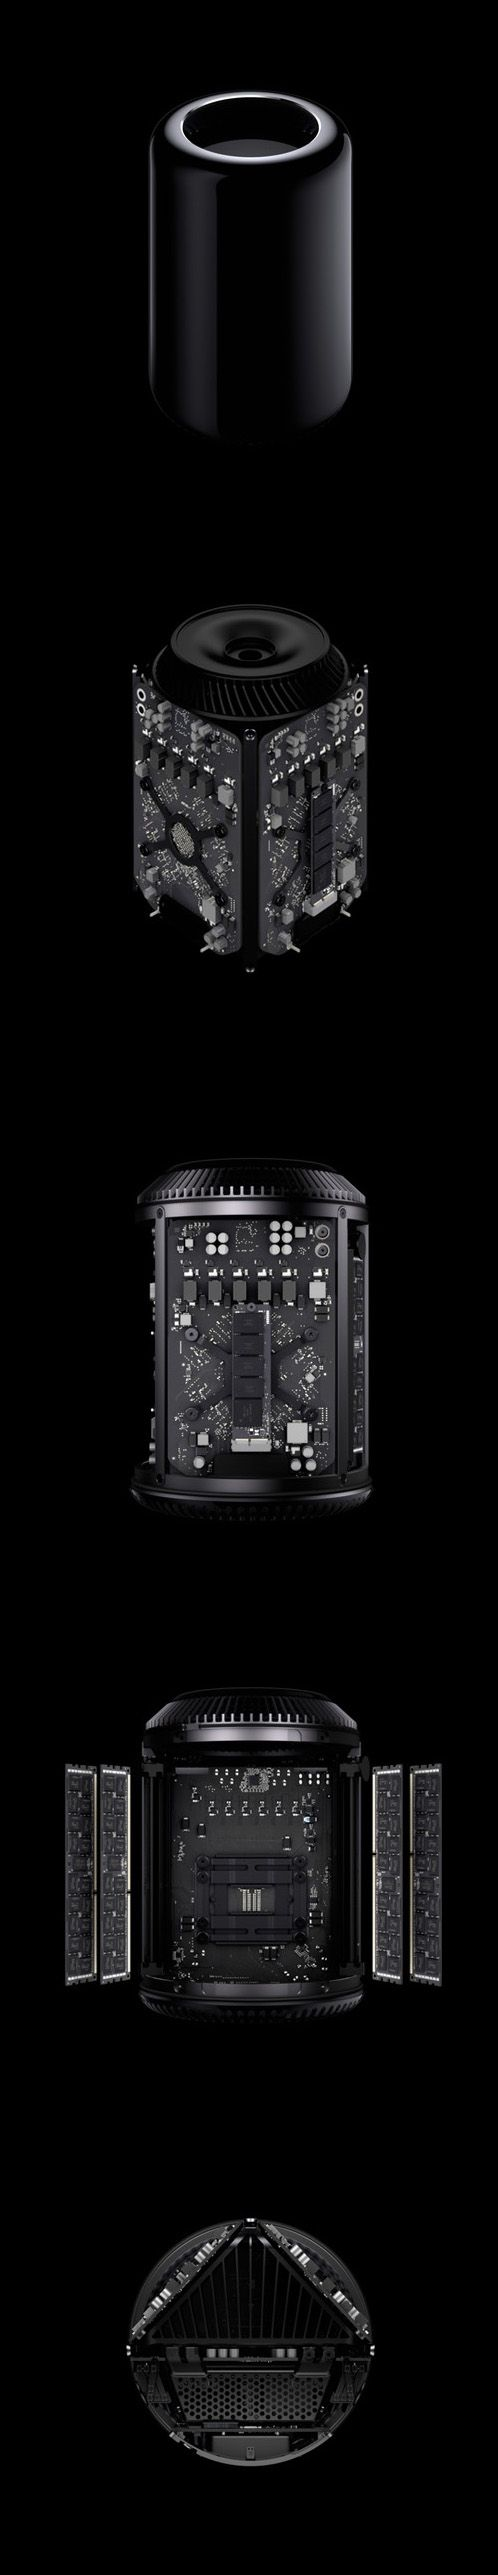 :||: Mac Pro.  In Every Way - My Style.